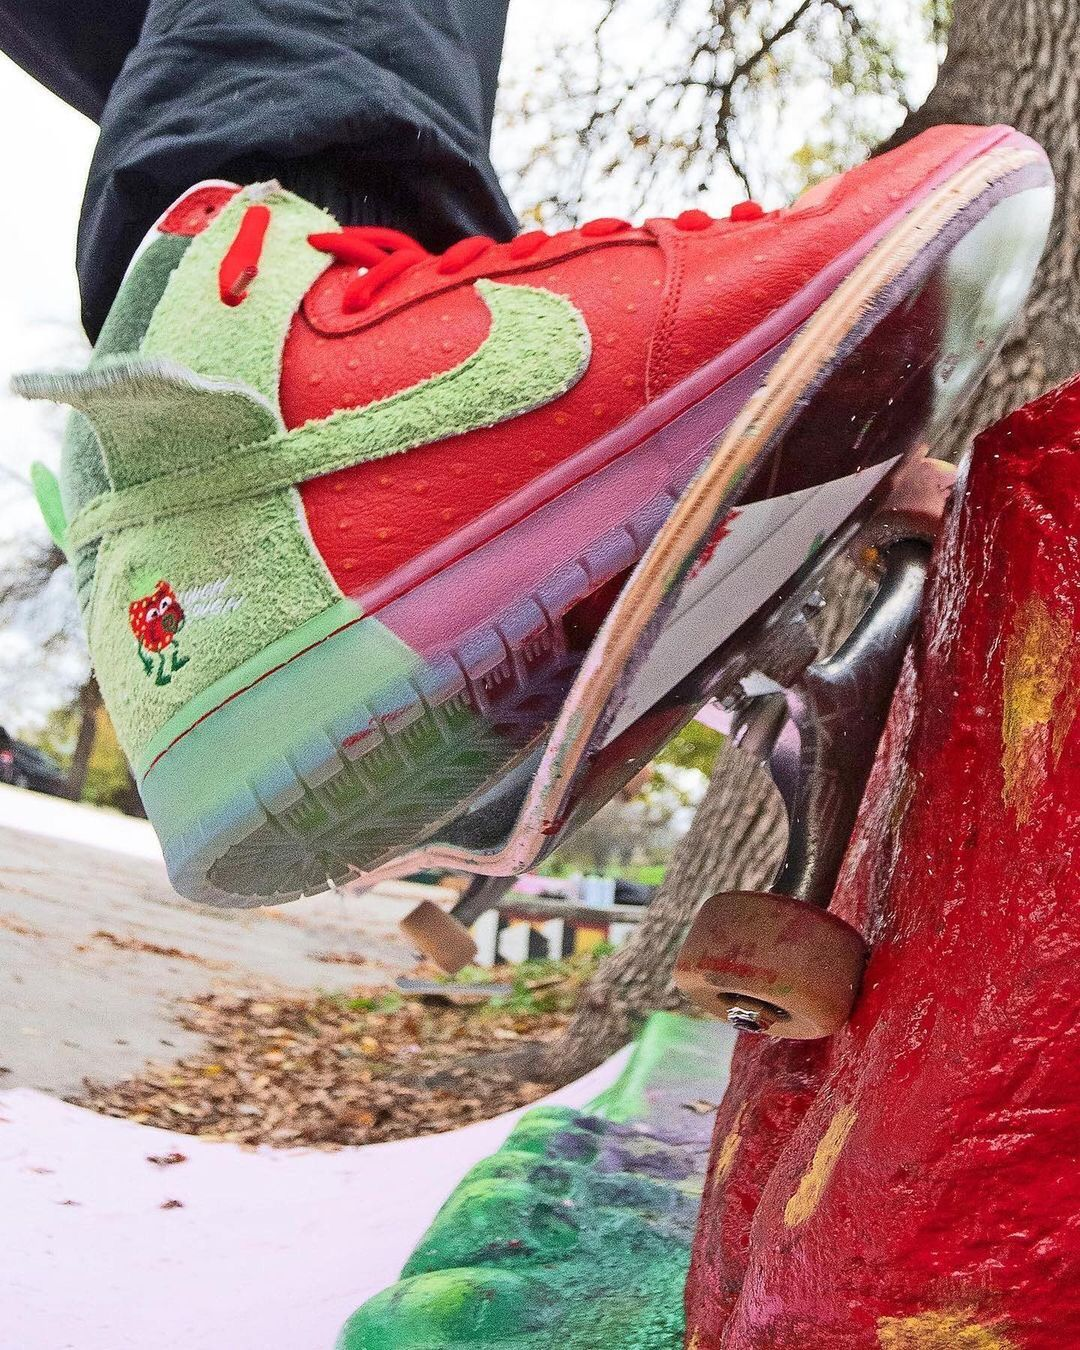 todd-bratrud-nike-sb-dunk-high-strawberry-cough-cw7093-600-release-20211030